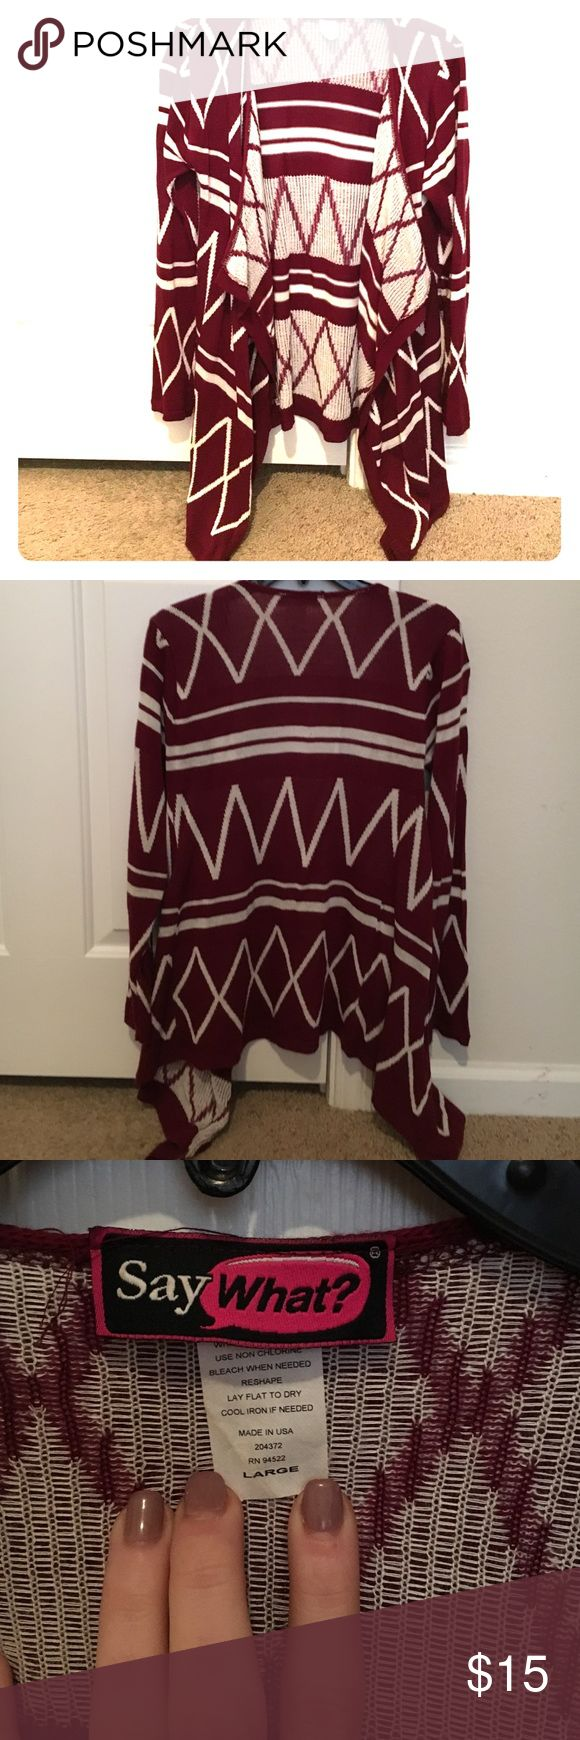 Maroon tribal print sweater cardigan Maroon tribal print cardigan featuring a high lox style. It's a large but I typically wear a medium. Say What? Jackets & Coats